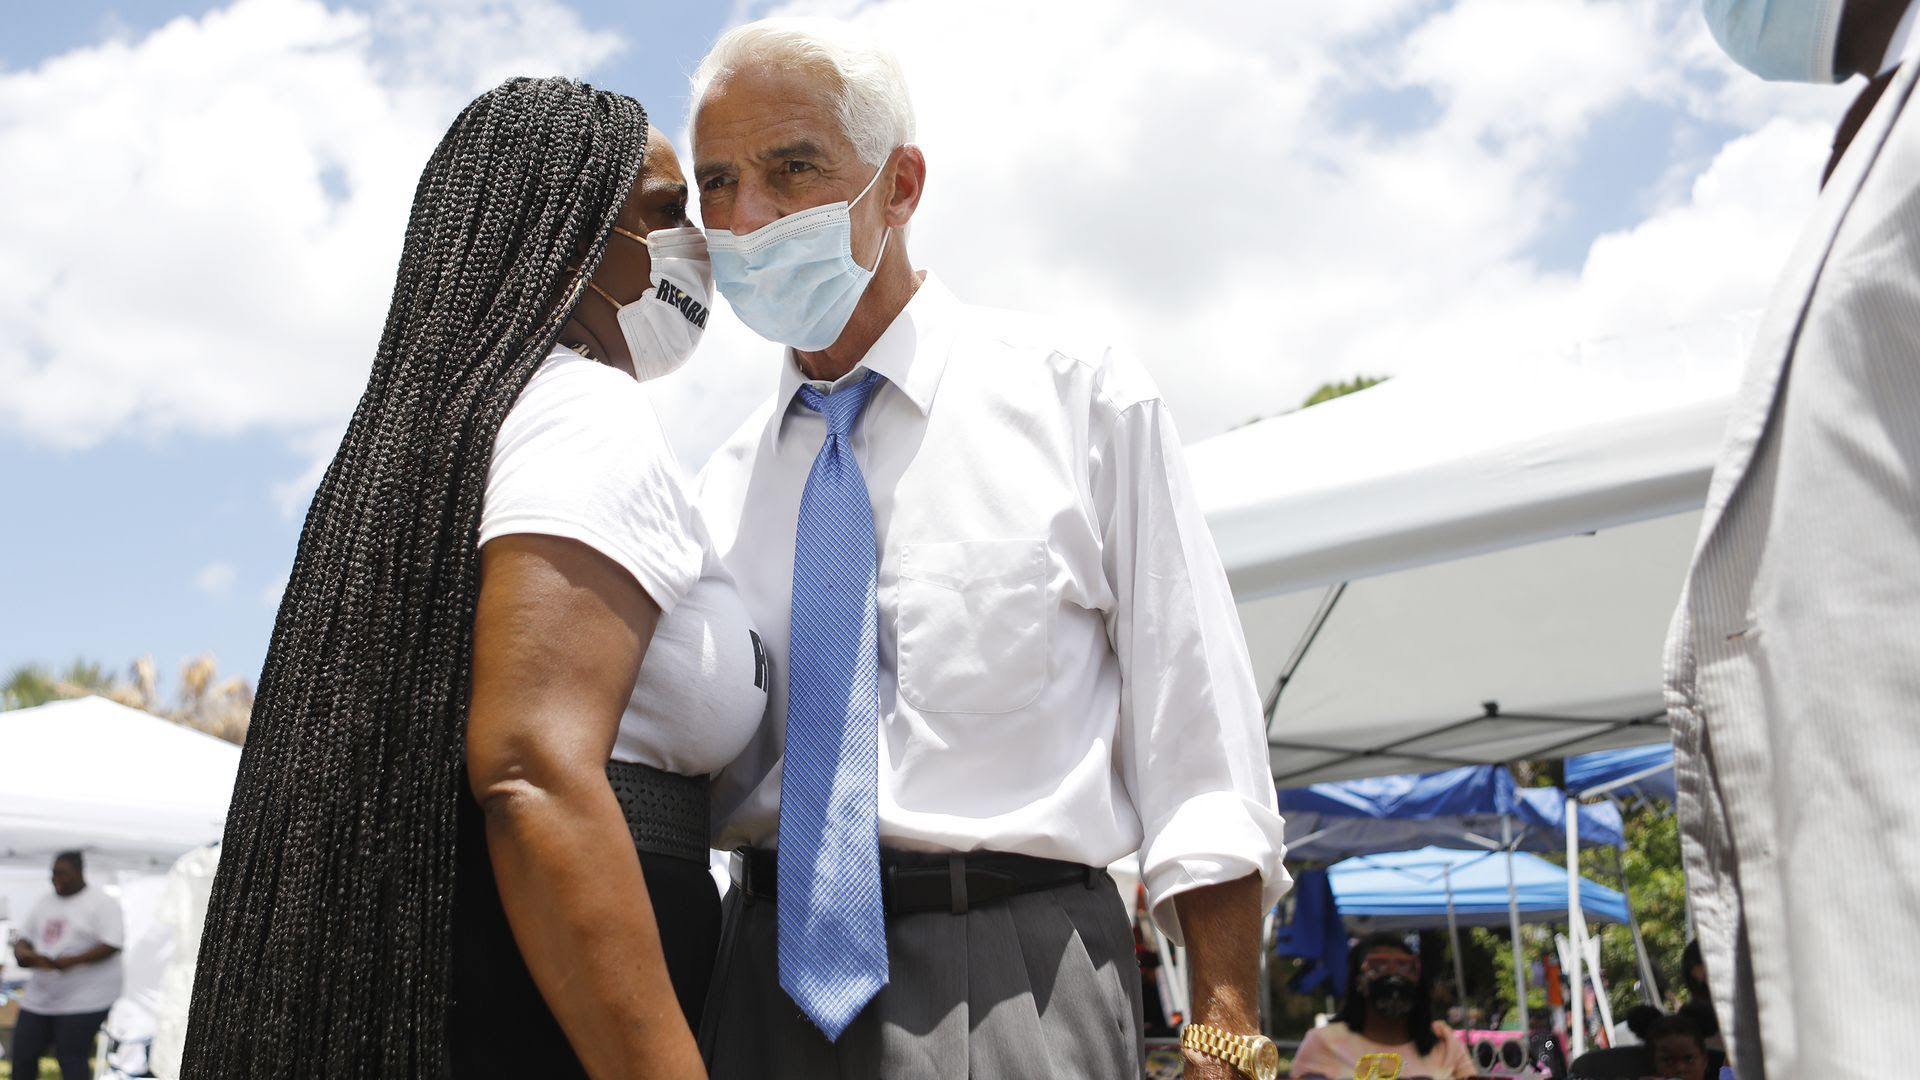 Joyce Ward talks with Rep. Charlie Crist (D-FL) at her vendor booth during the Black Lives Matters Business Expo